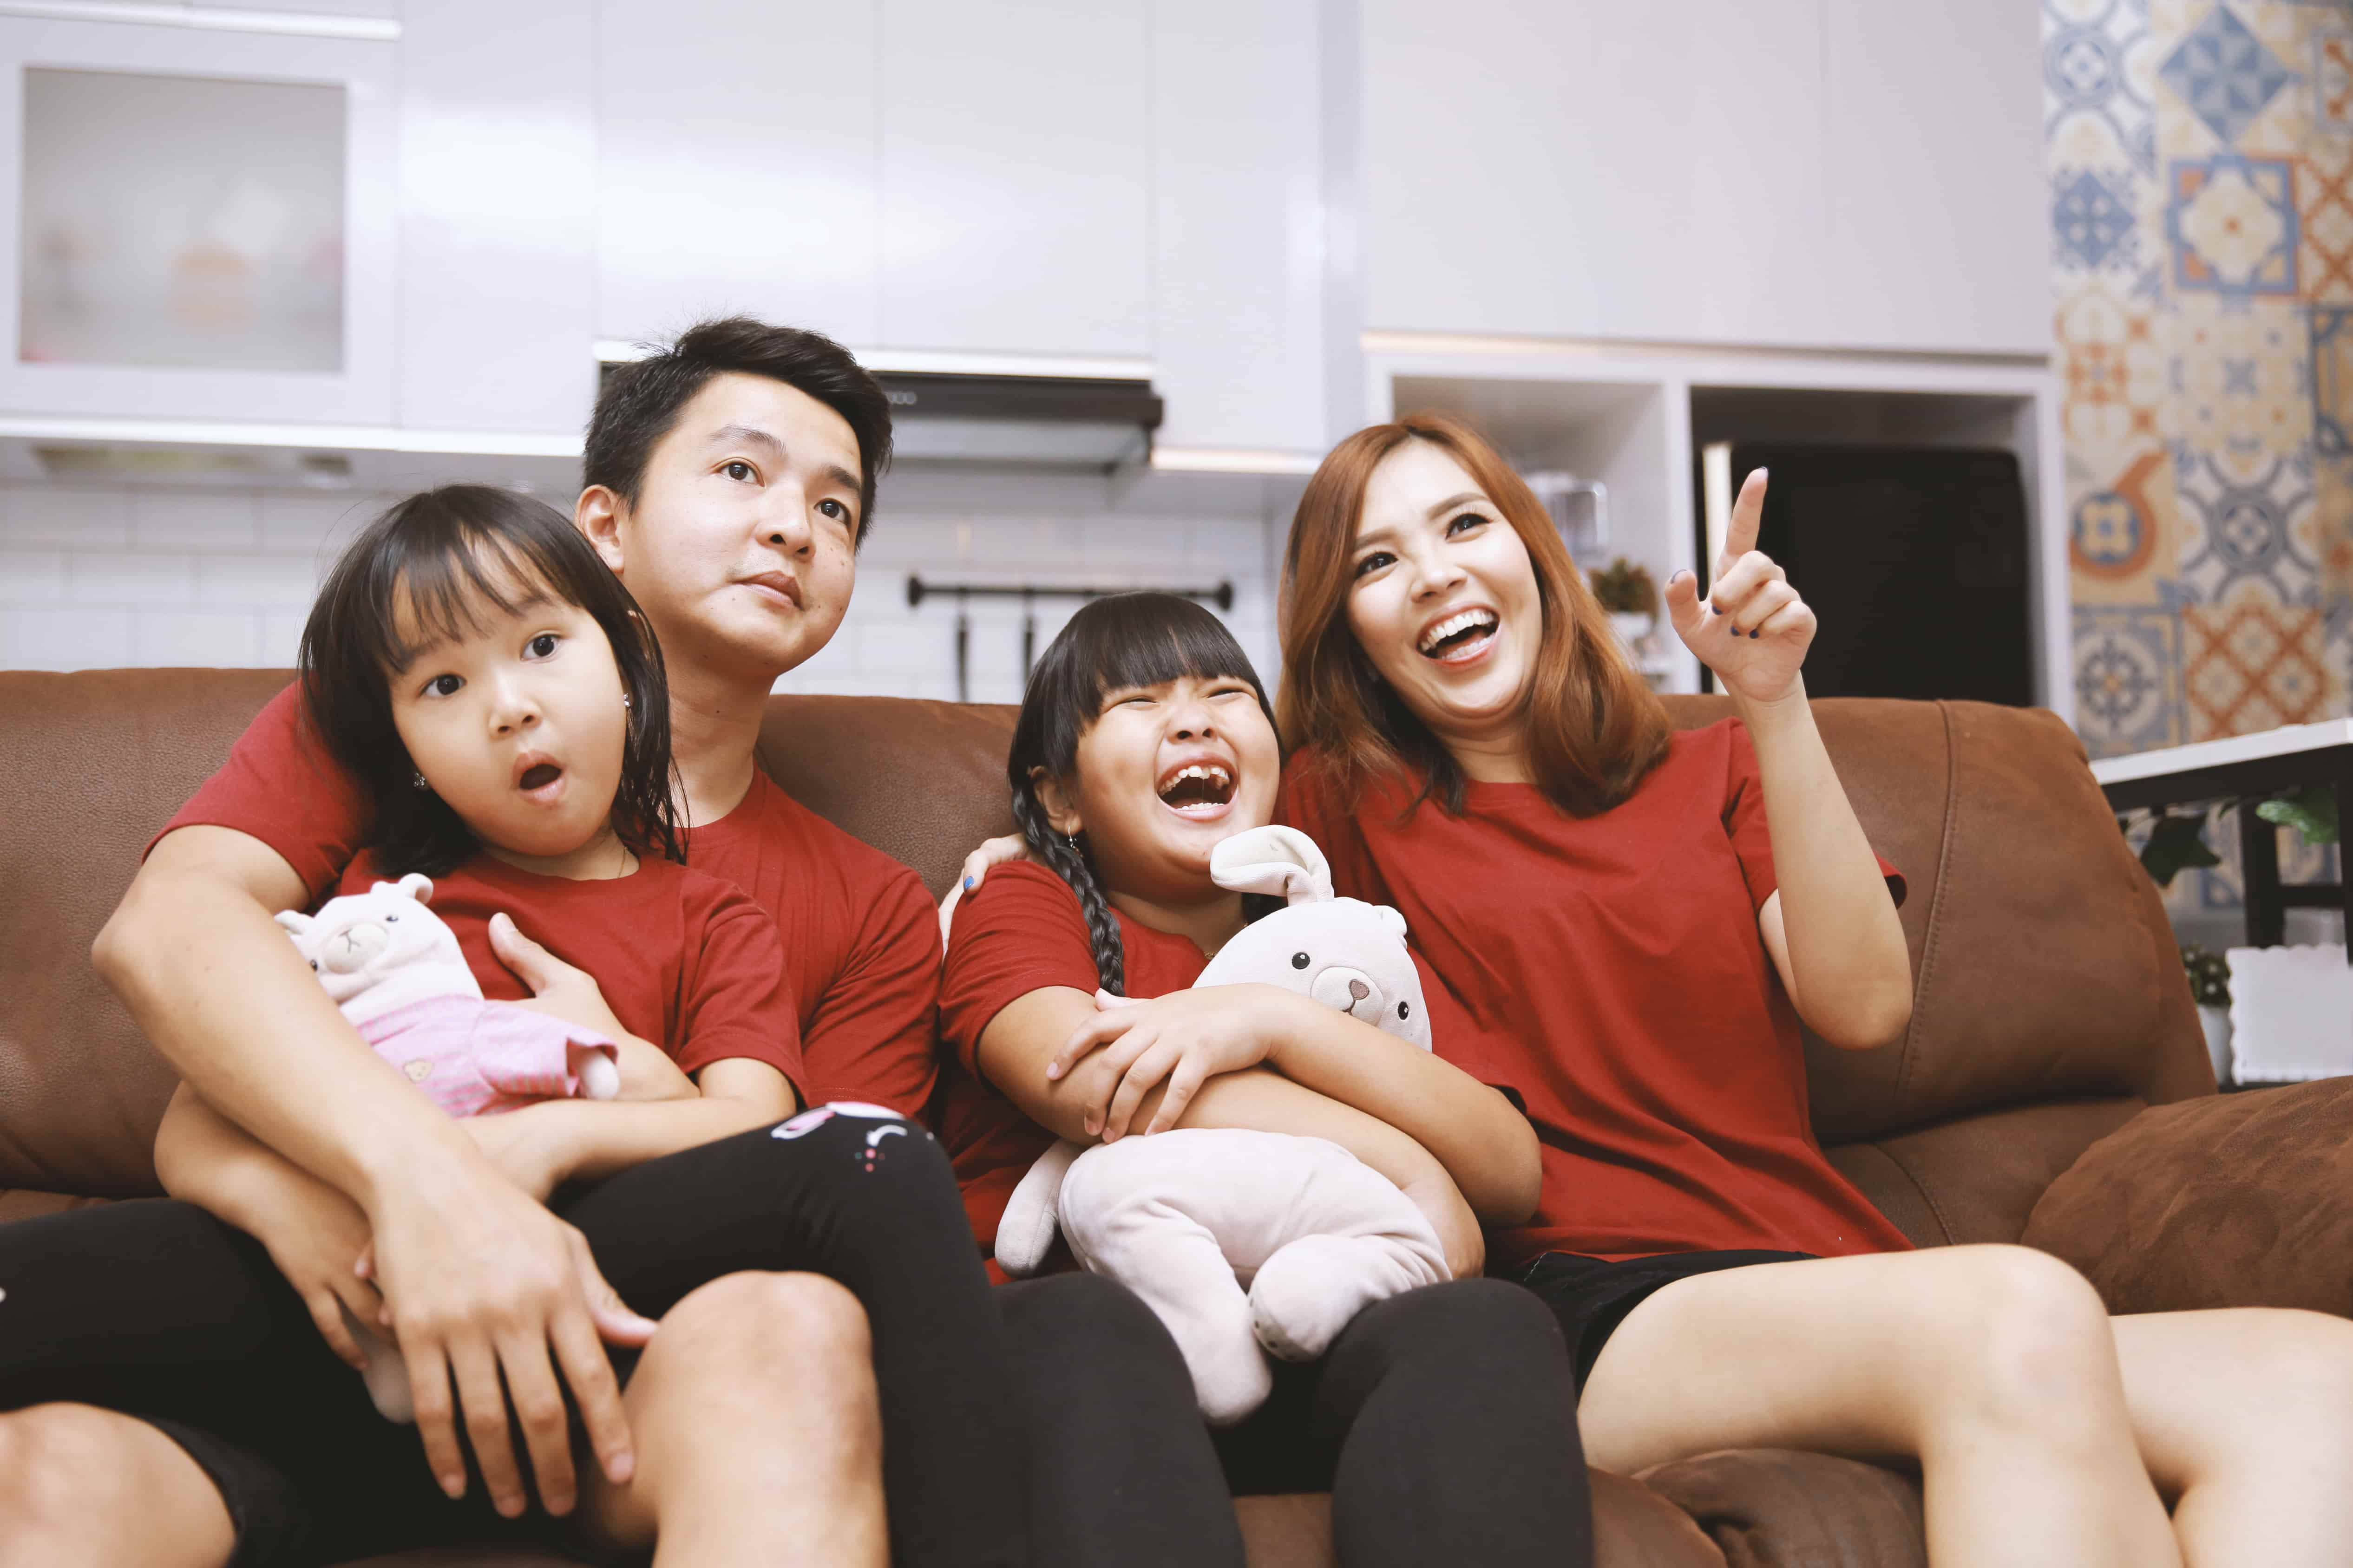 An Asian American family sits on their couch, watching and enjoying a TV program